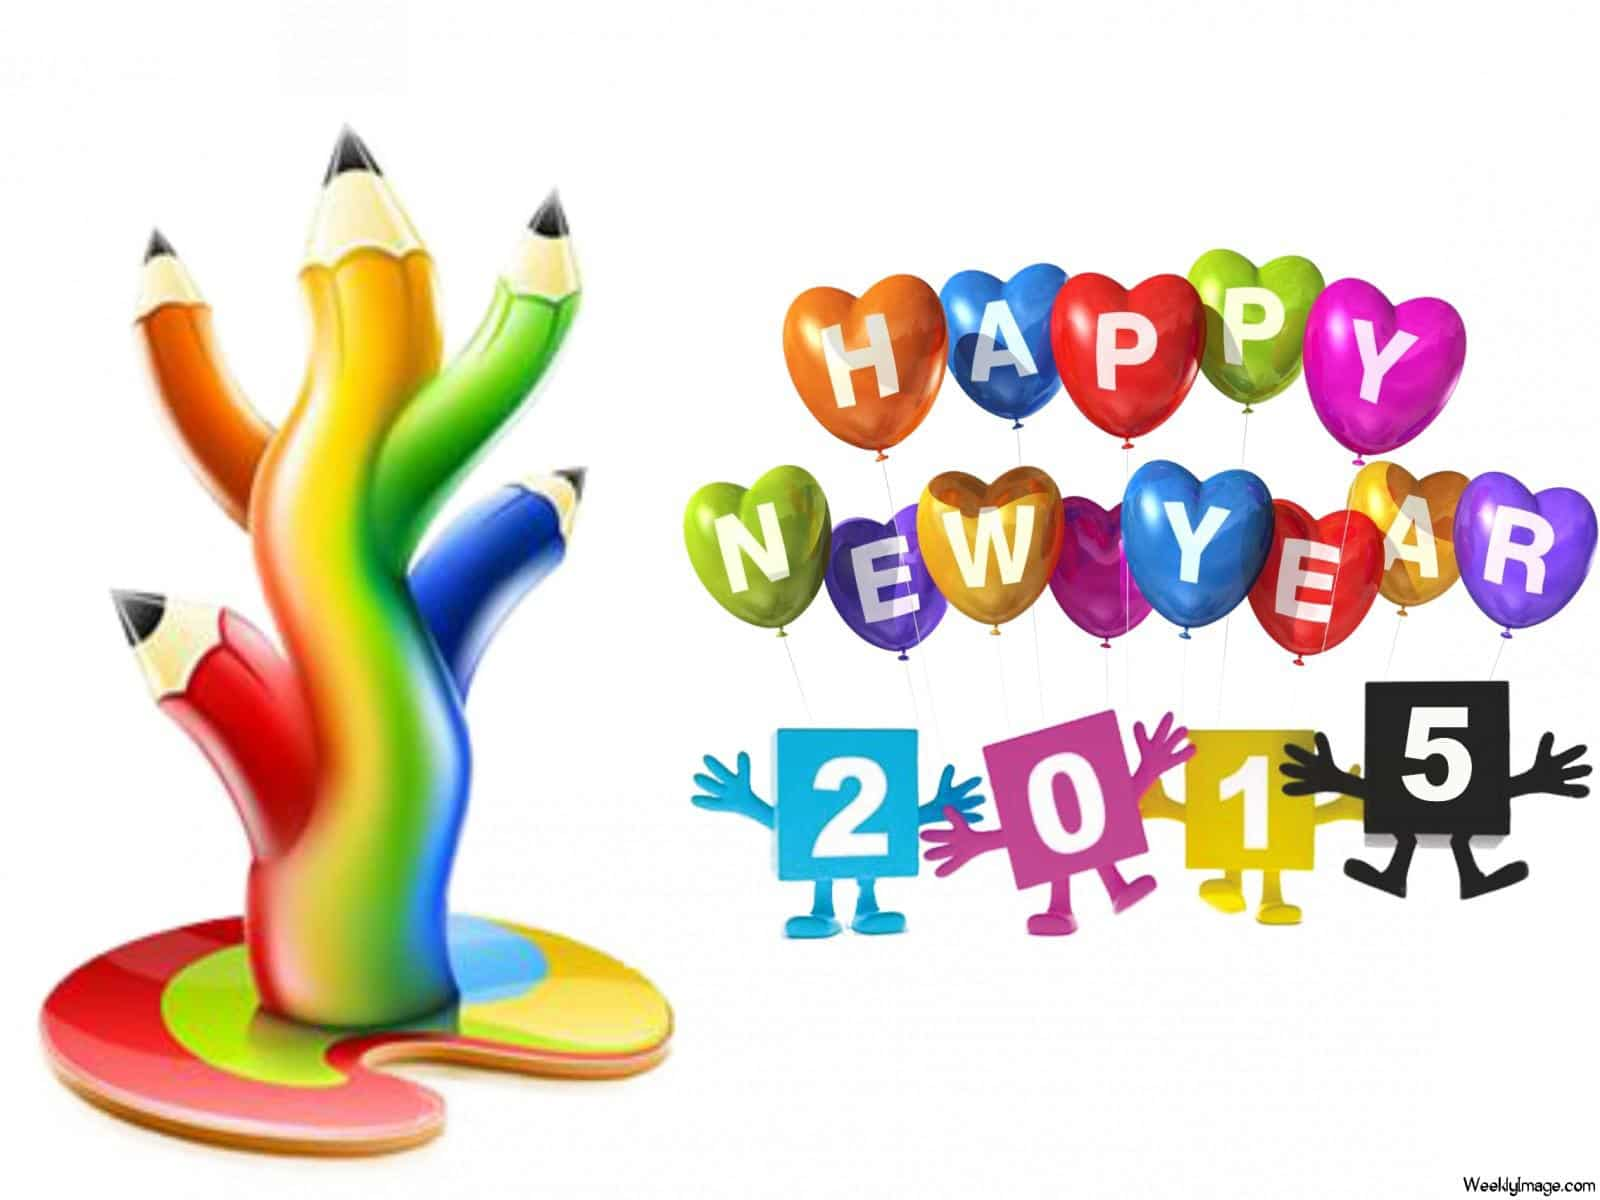 2017 clipart happy. Free new year greeting